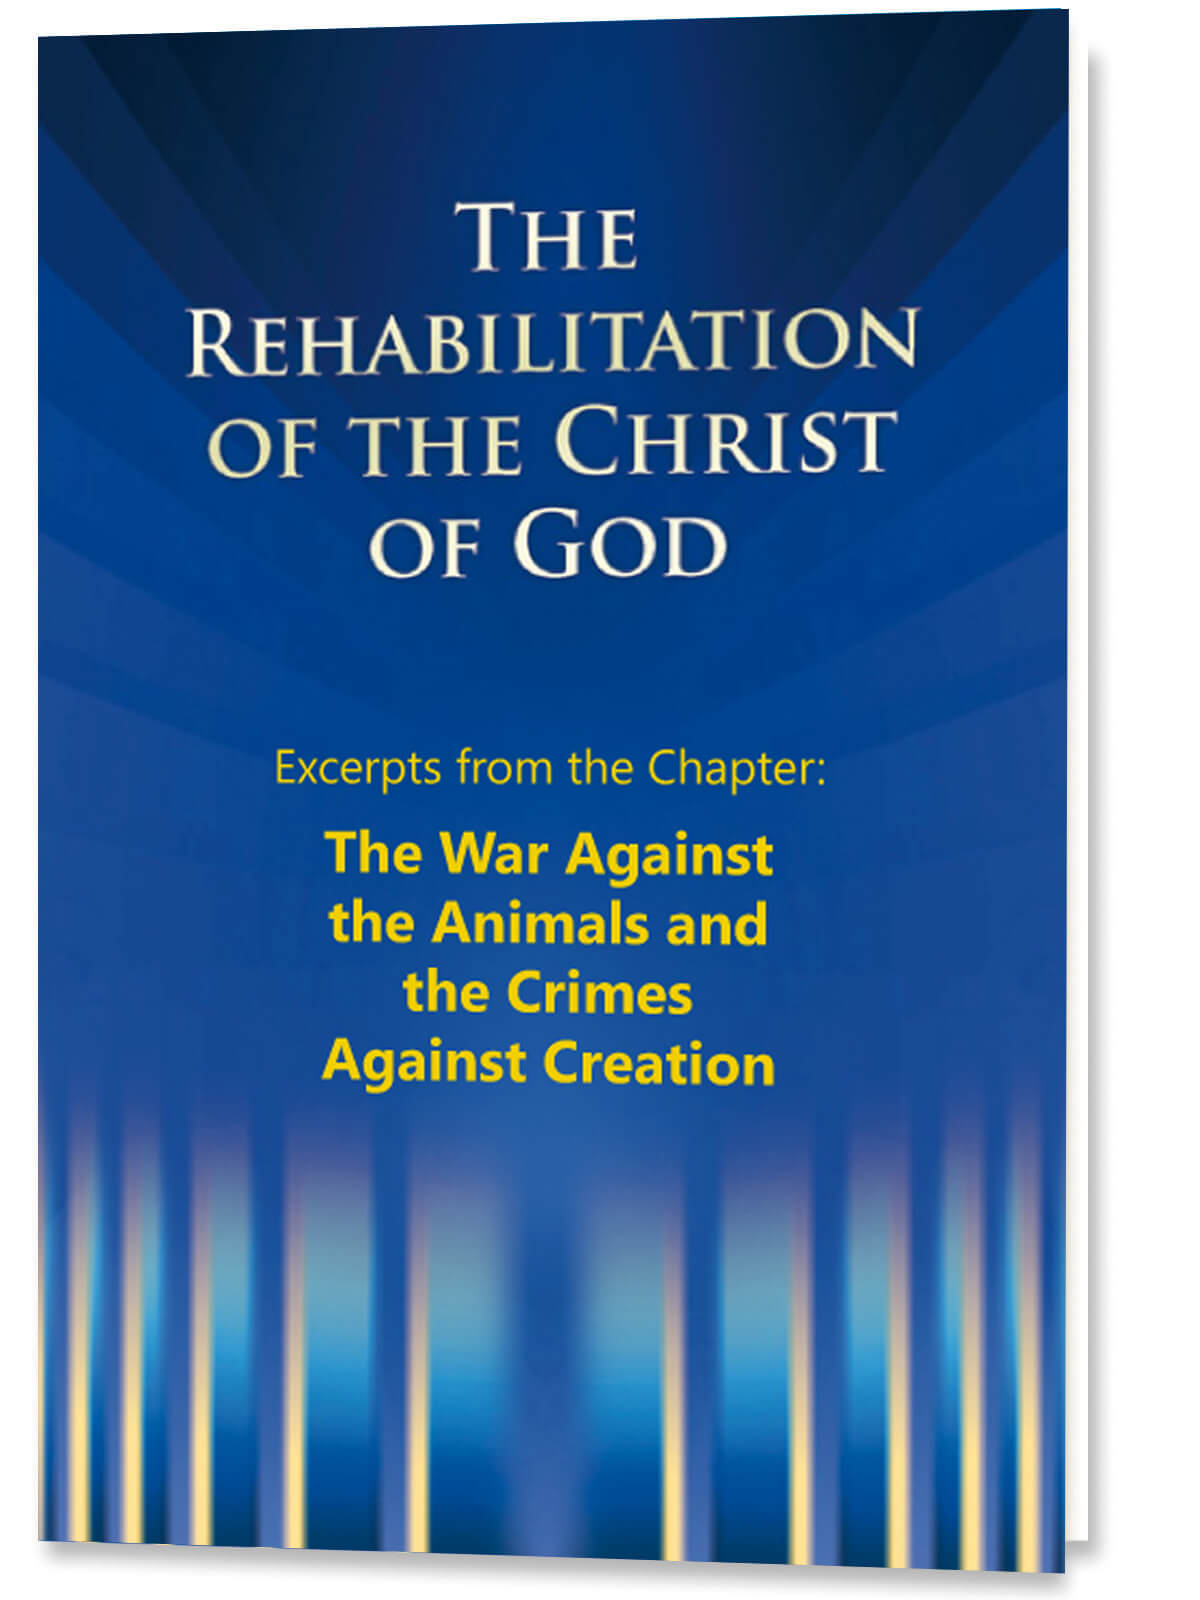 The Rehabilitation of the Christ of God - Excerpts - The War Against the Animals and the Crimes Against Creation